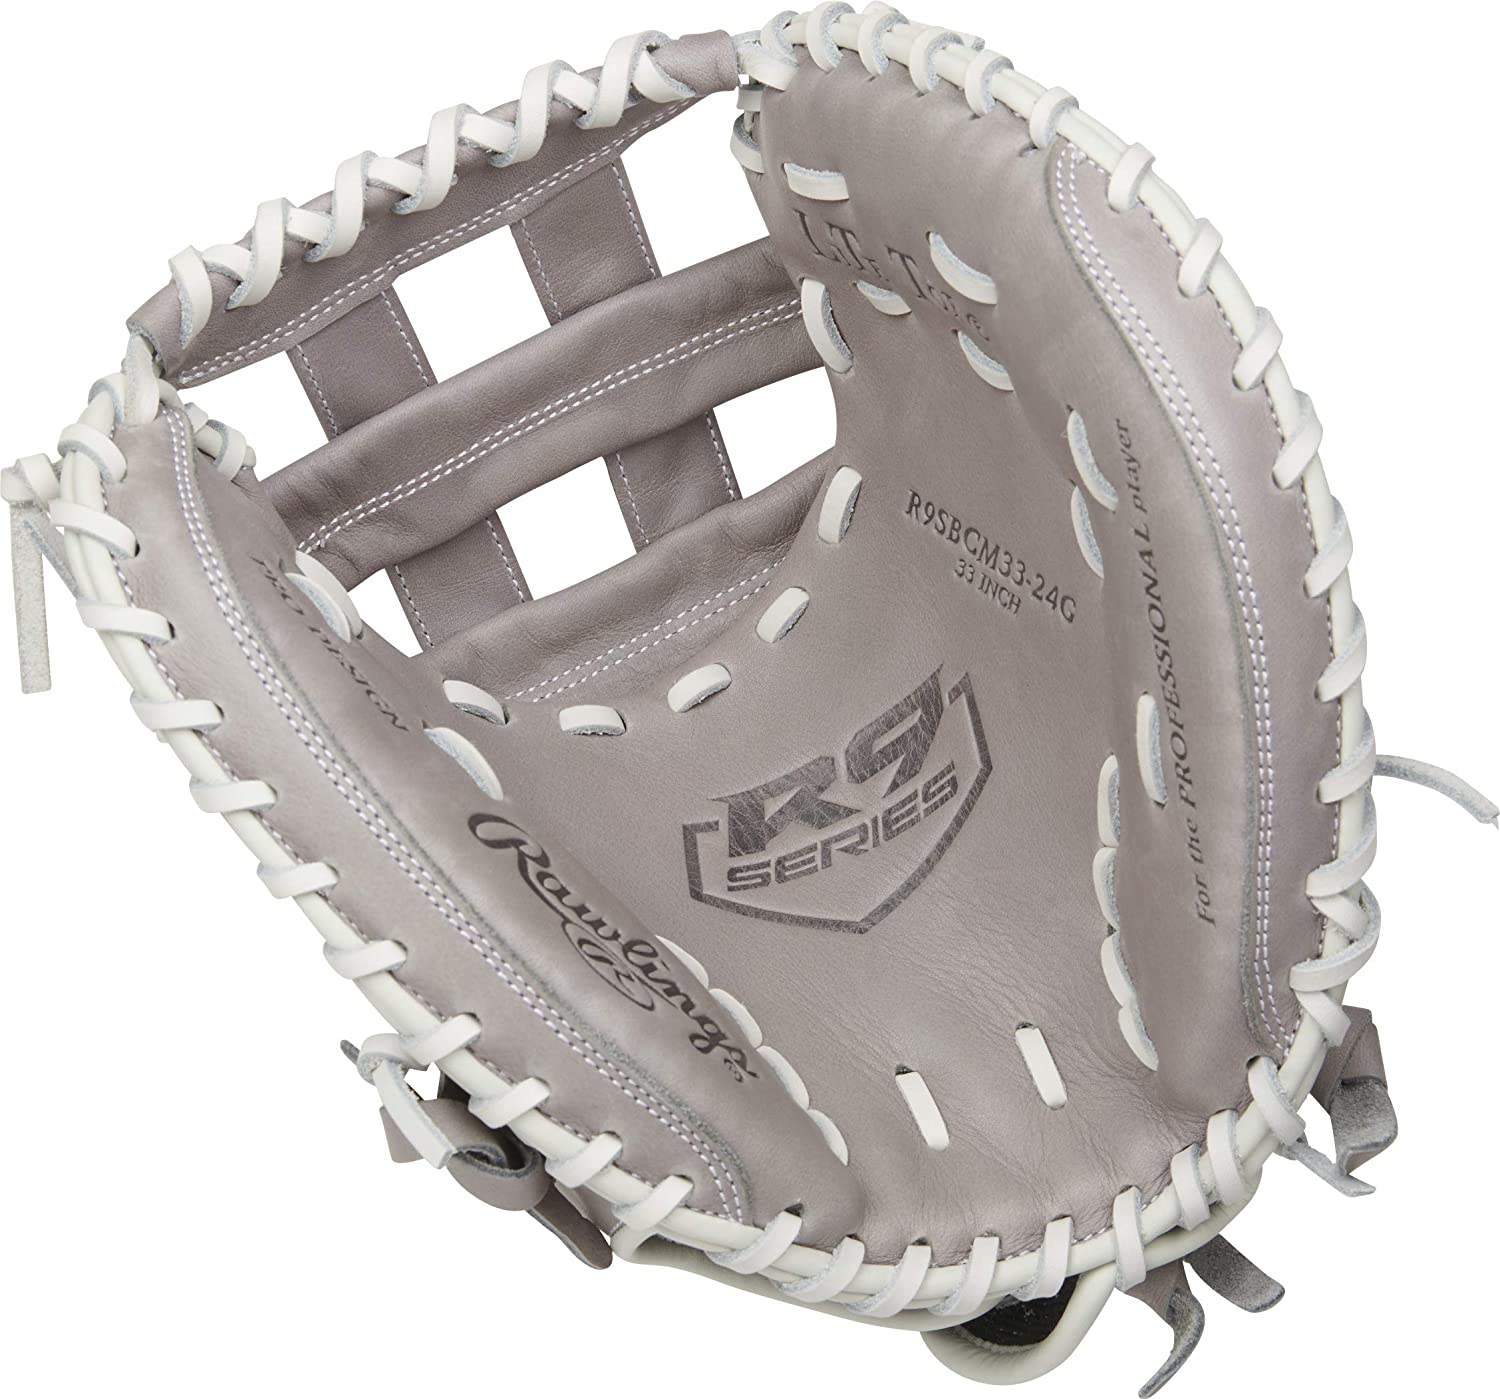 "Rawlings R9 Series 33"" Softball Catchers Glove R9SBCM33"